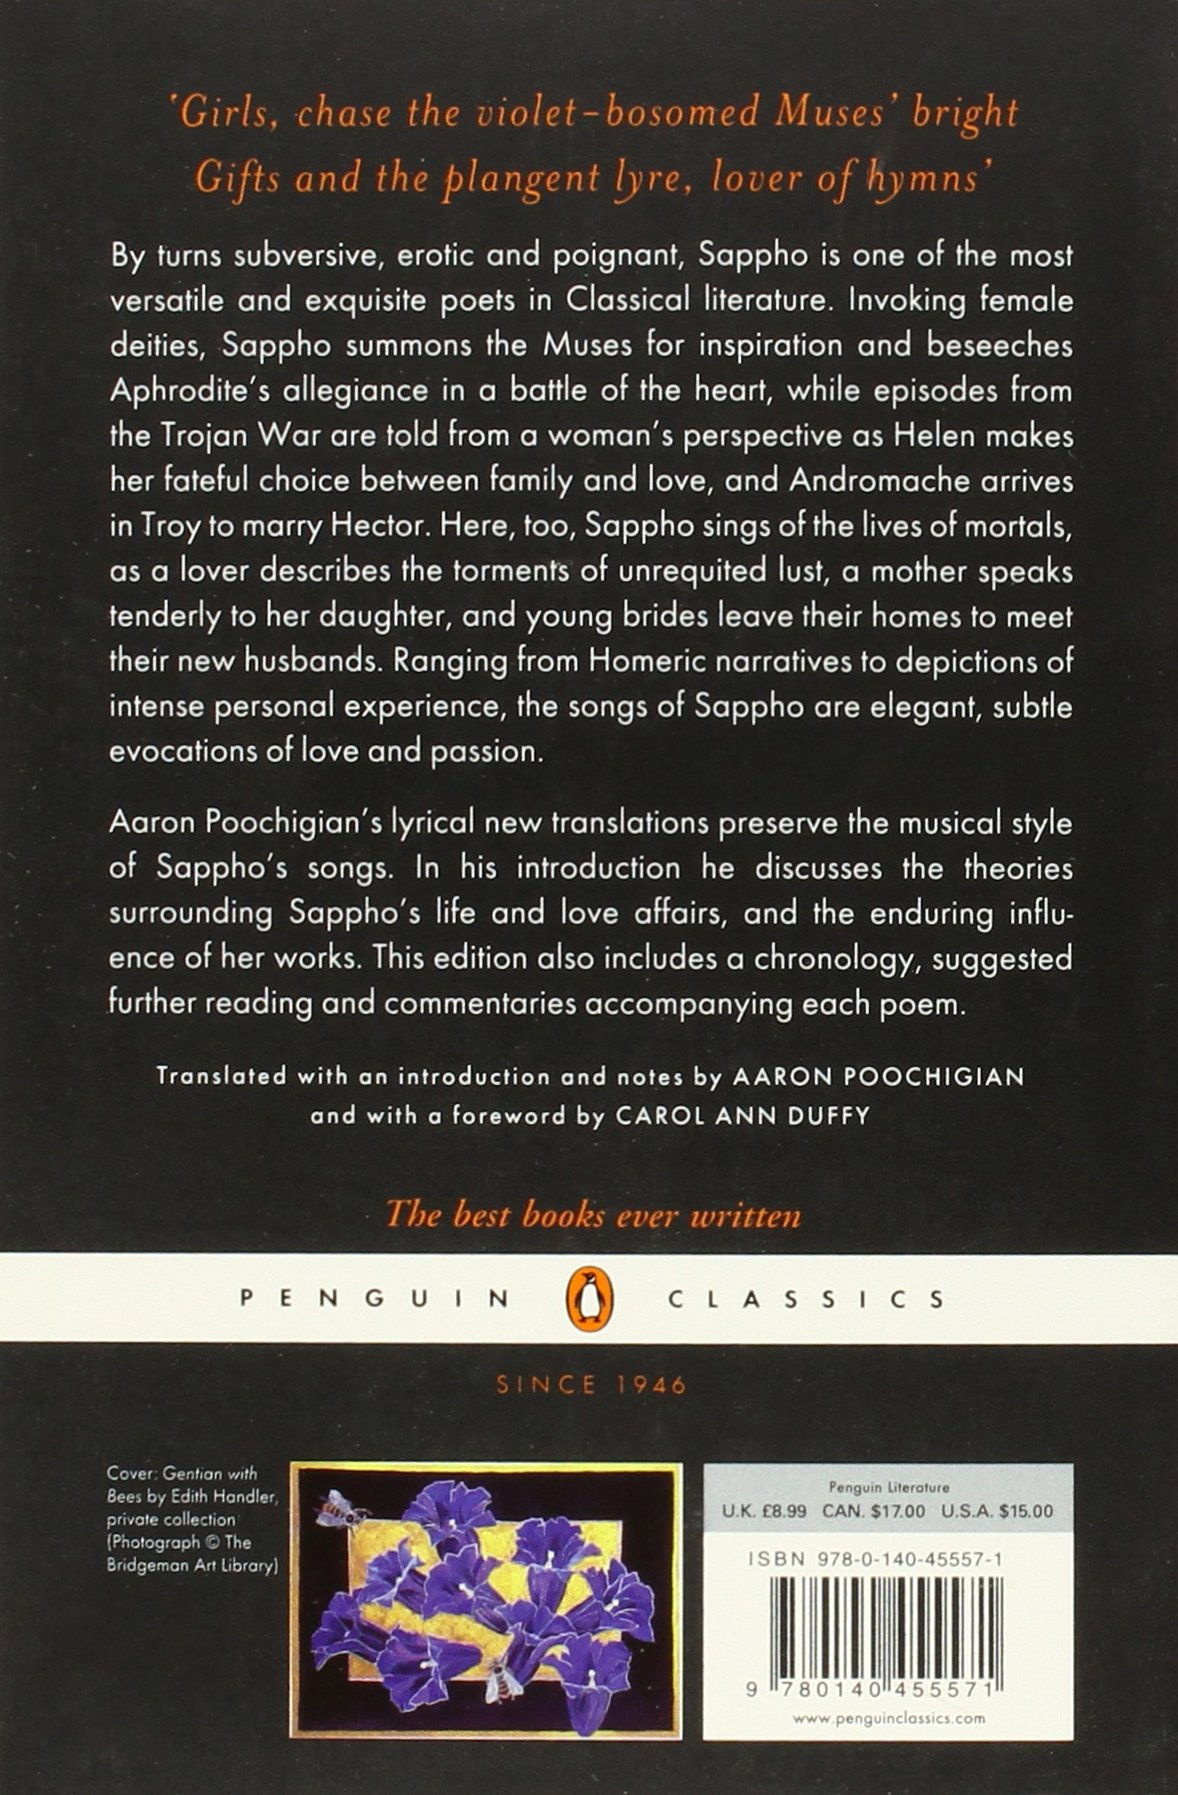 Stung with love poems and fragments penguin classics sappho stung with love poems and fragments penguin classics sappho aaron poochigian carol ann duffy 9780140455571 amazon books fandeluxe Gallery